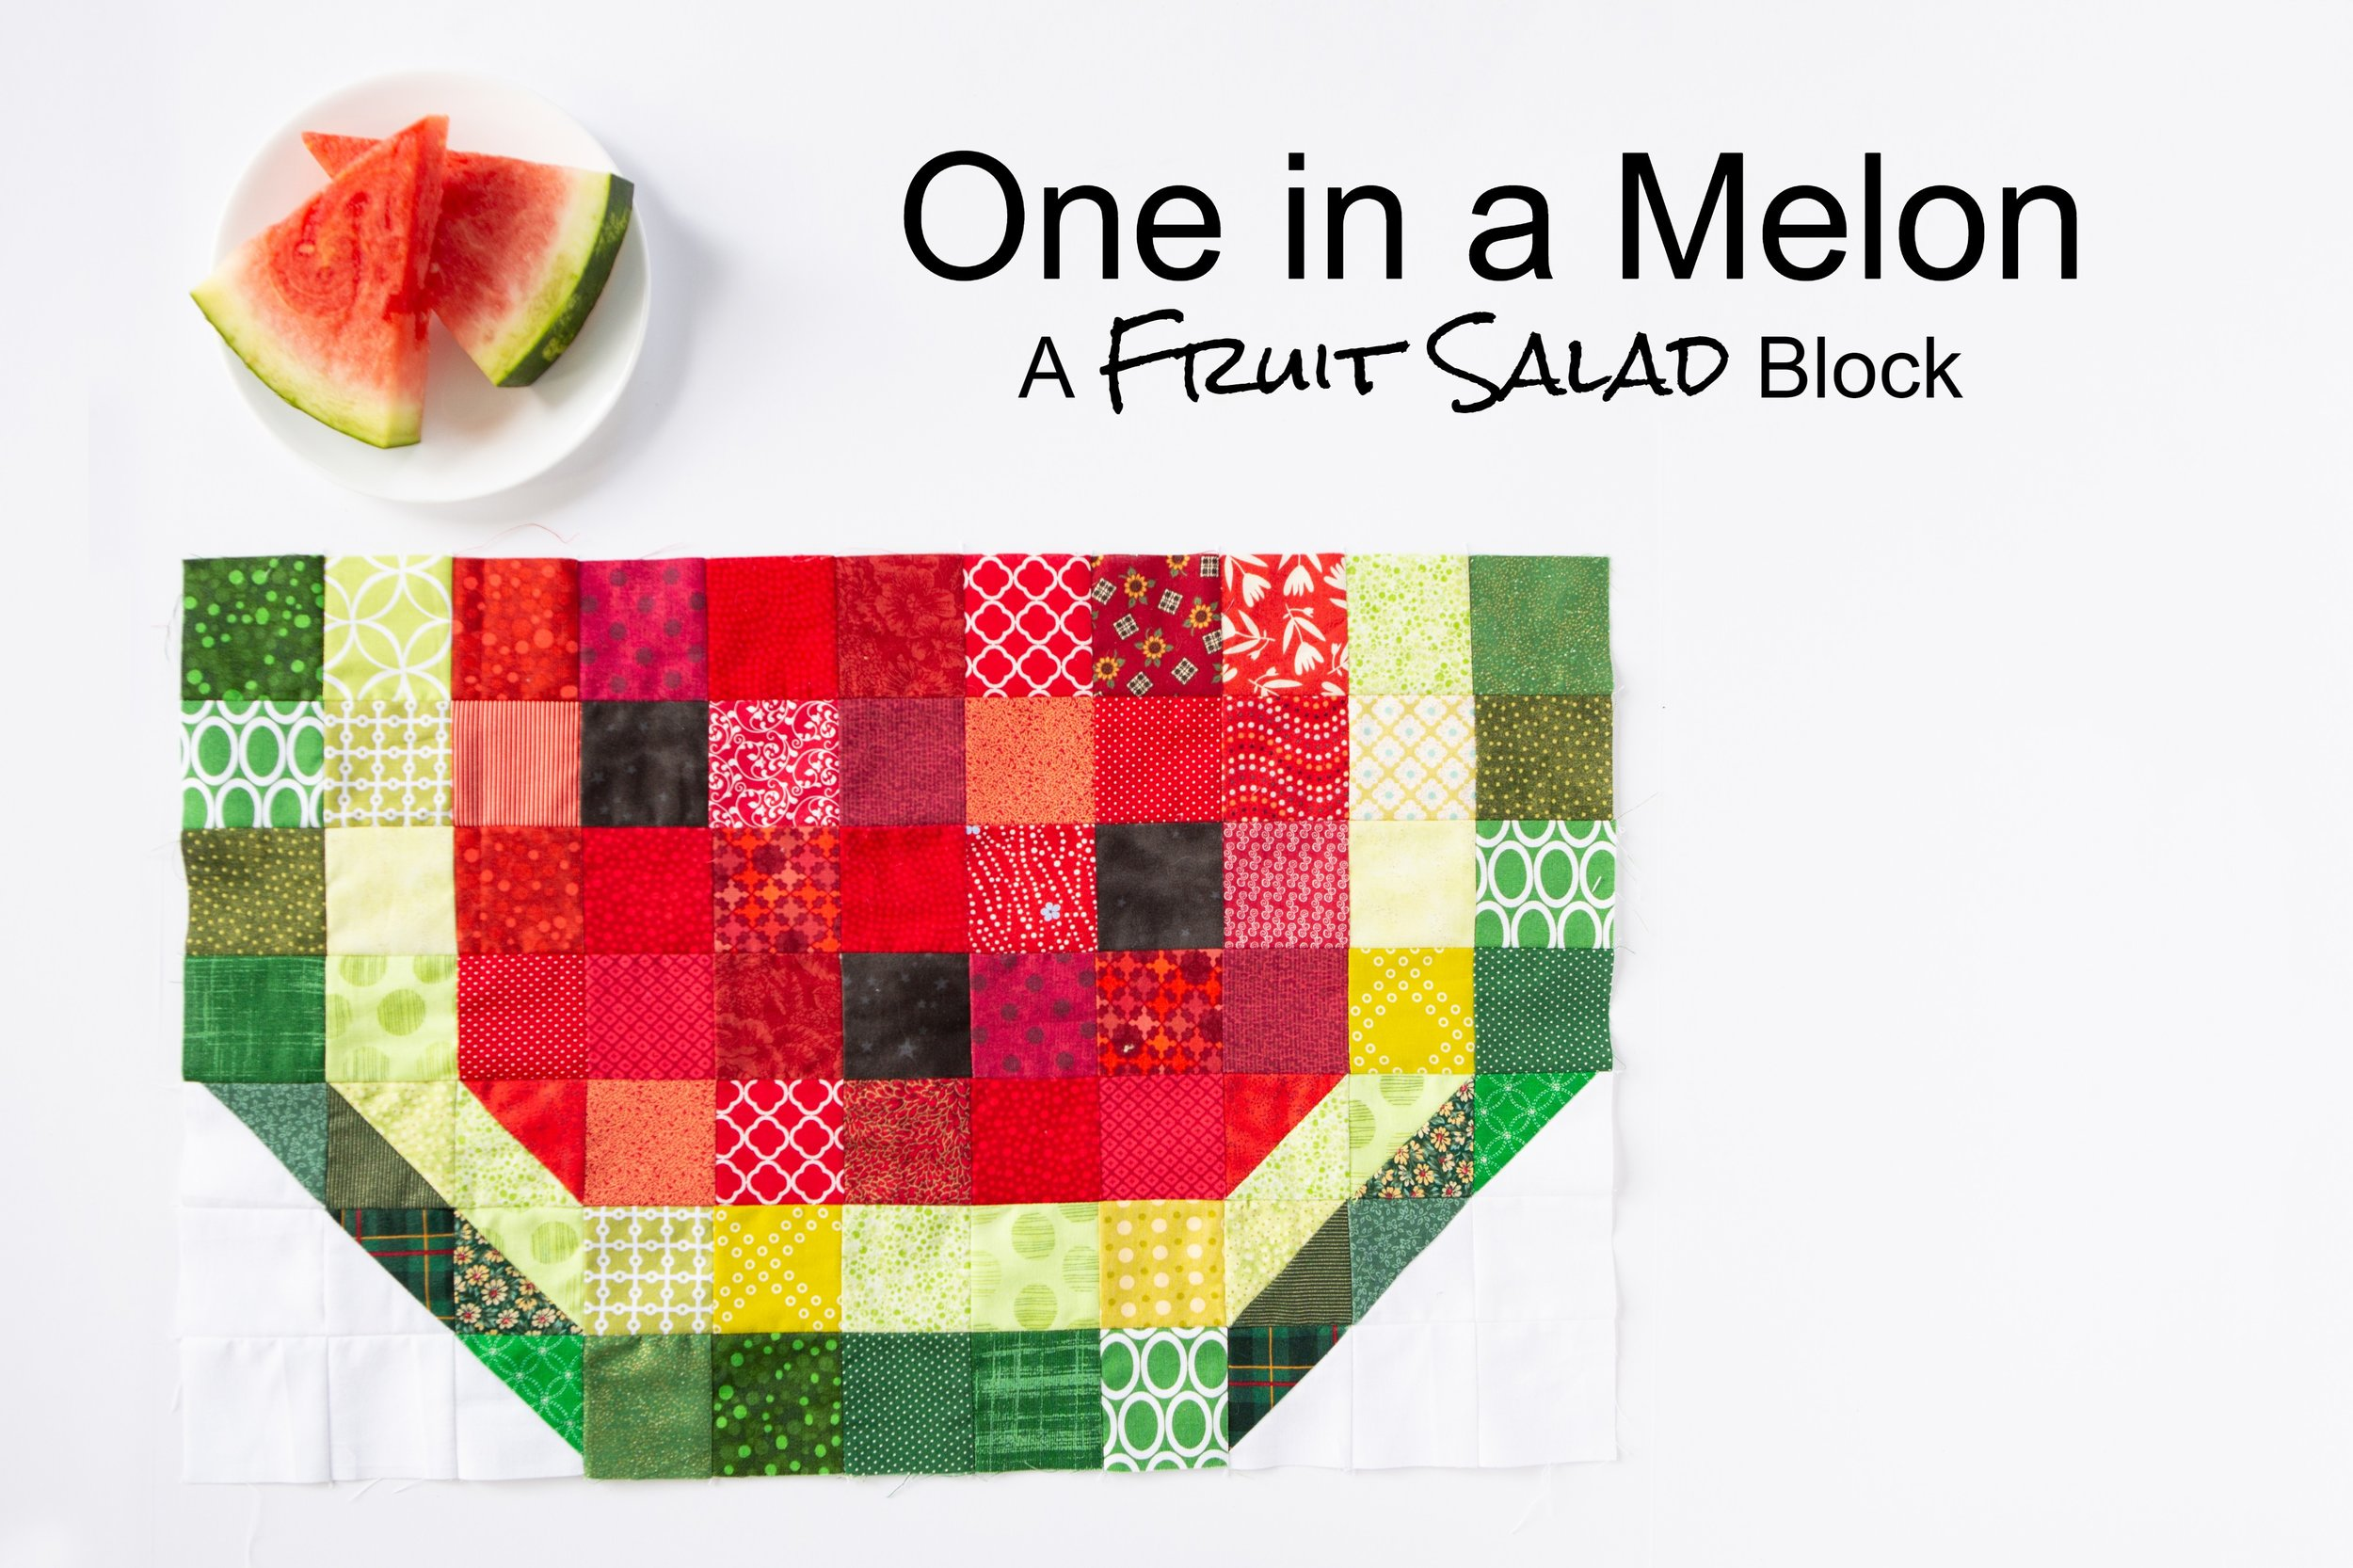 One in a Melon - a Fruit Salad Block